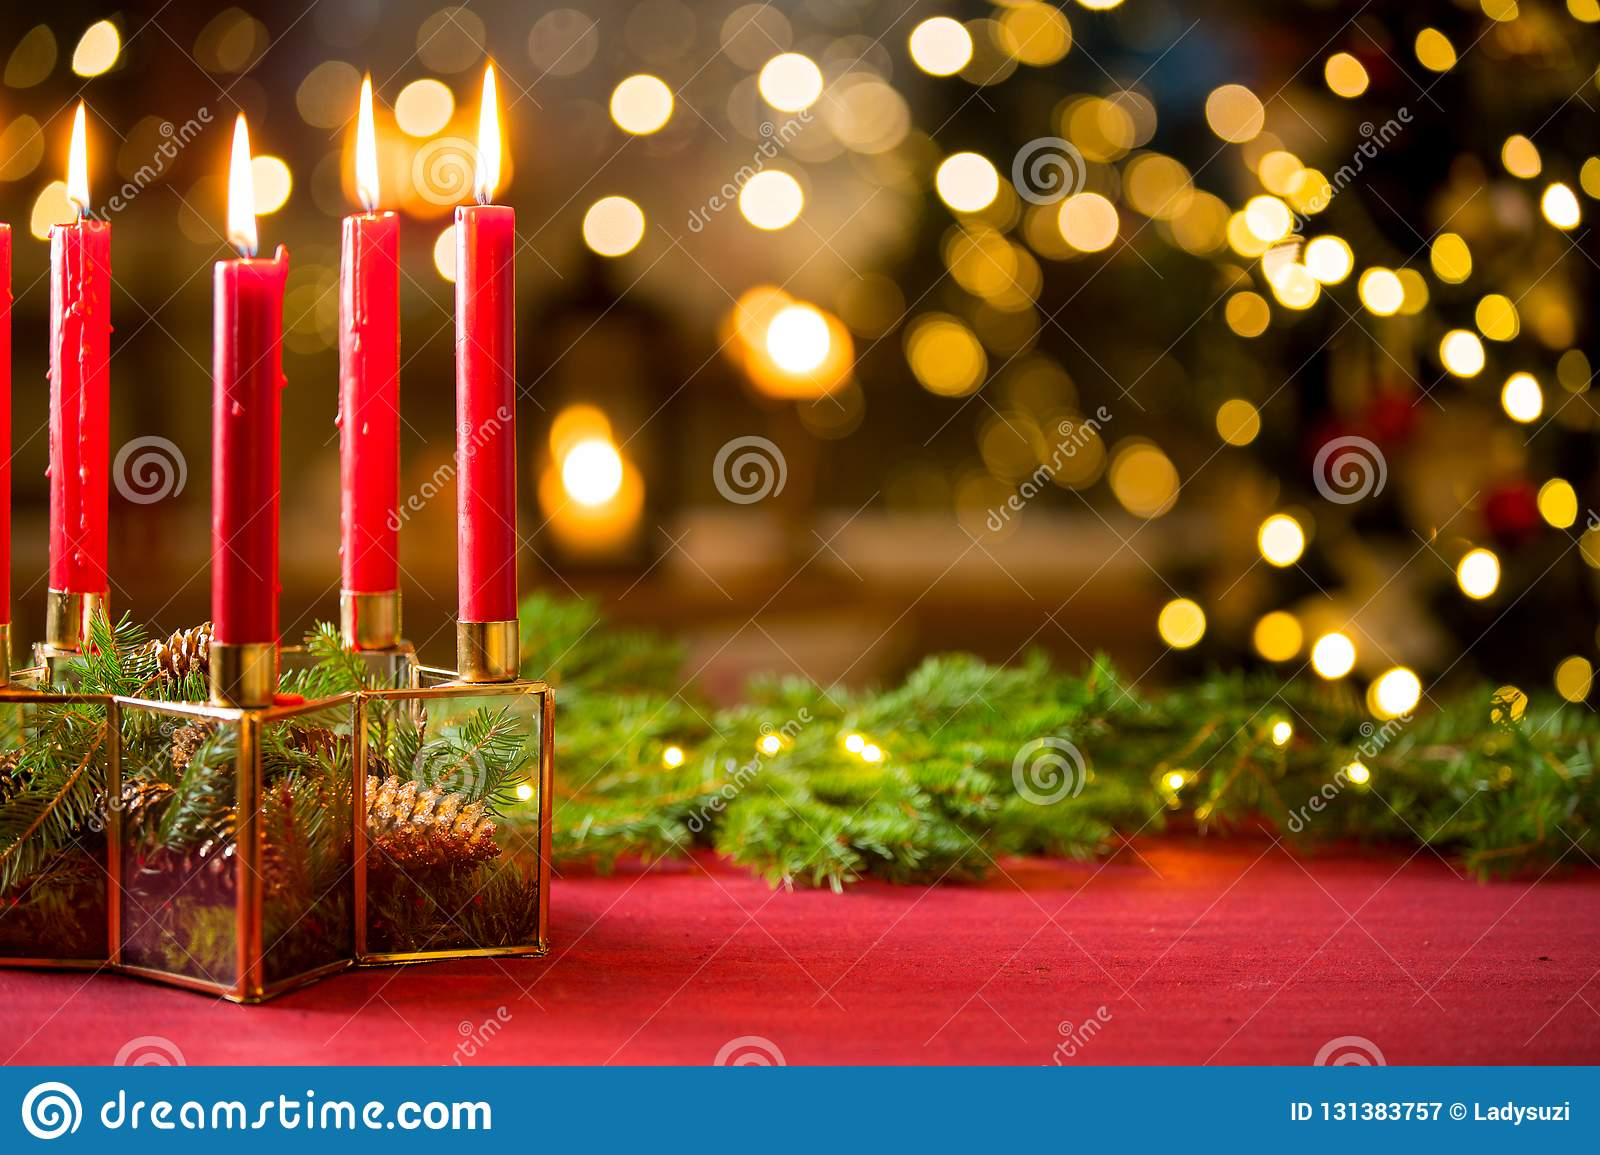 Background of glass and gold candleholder